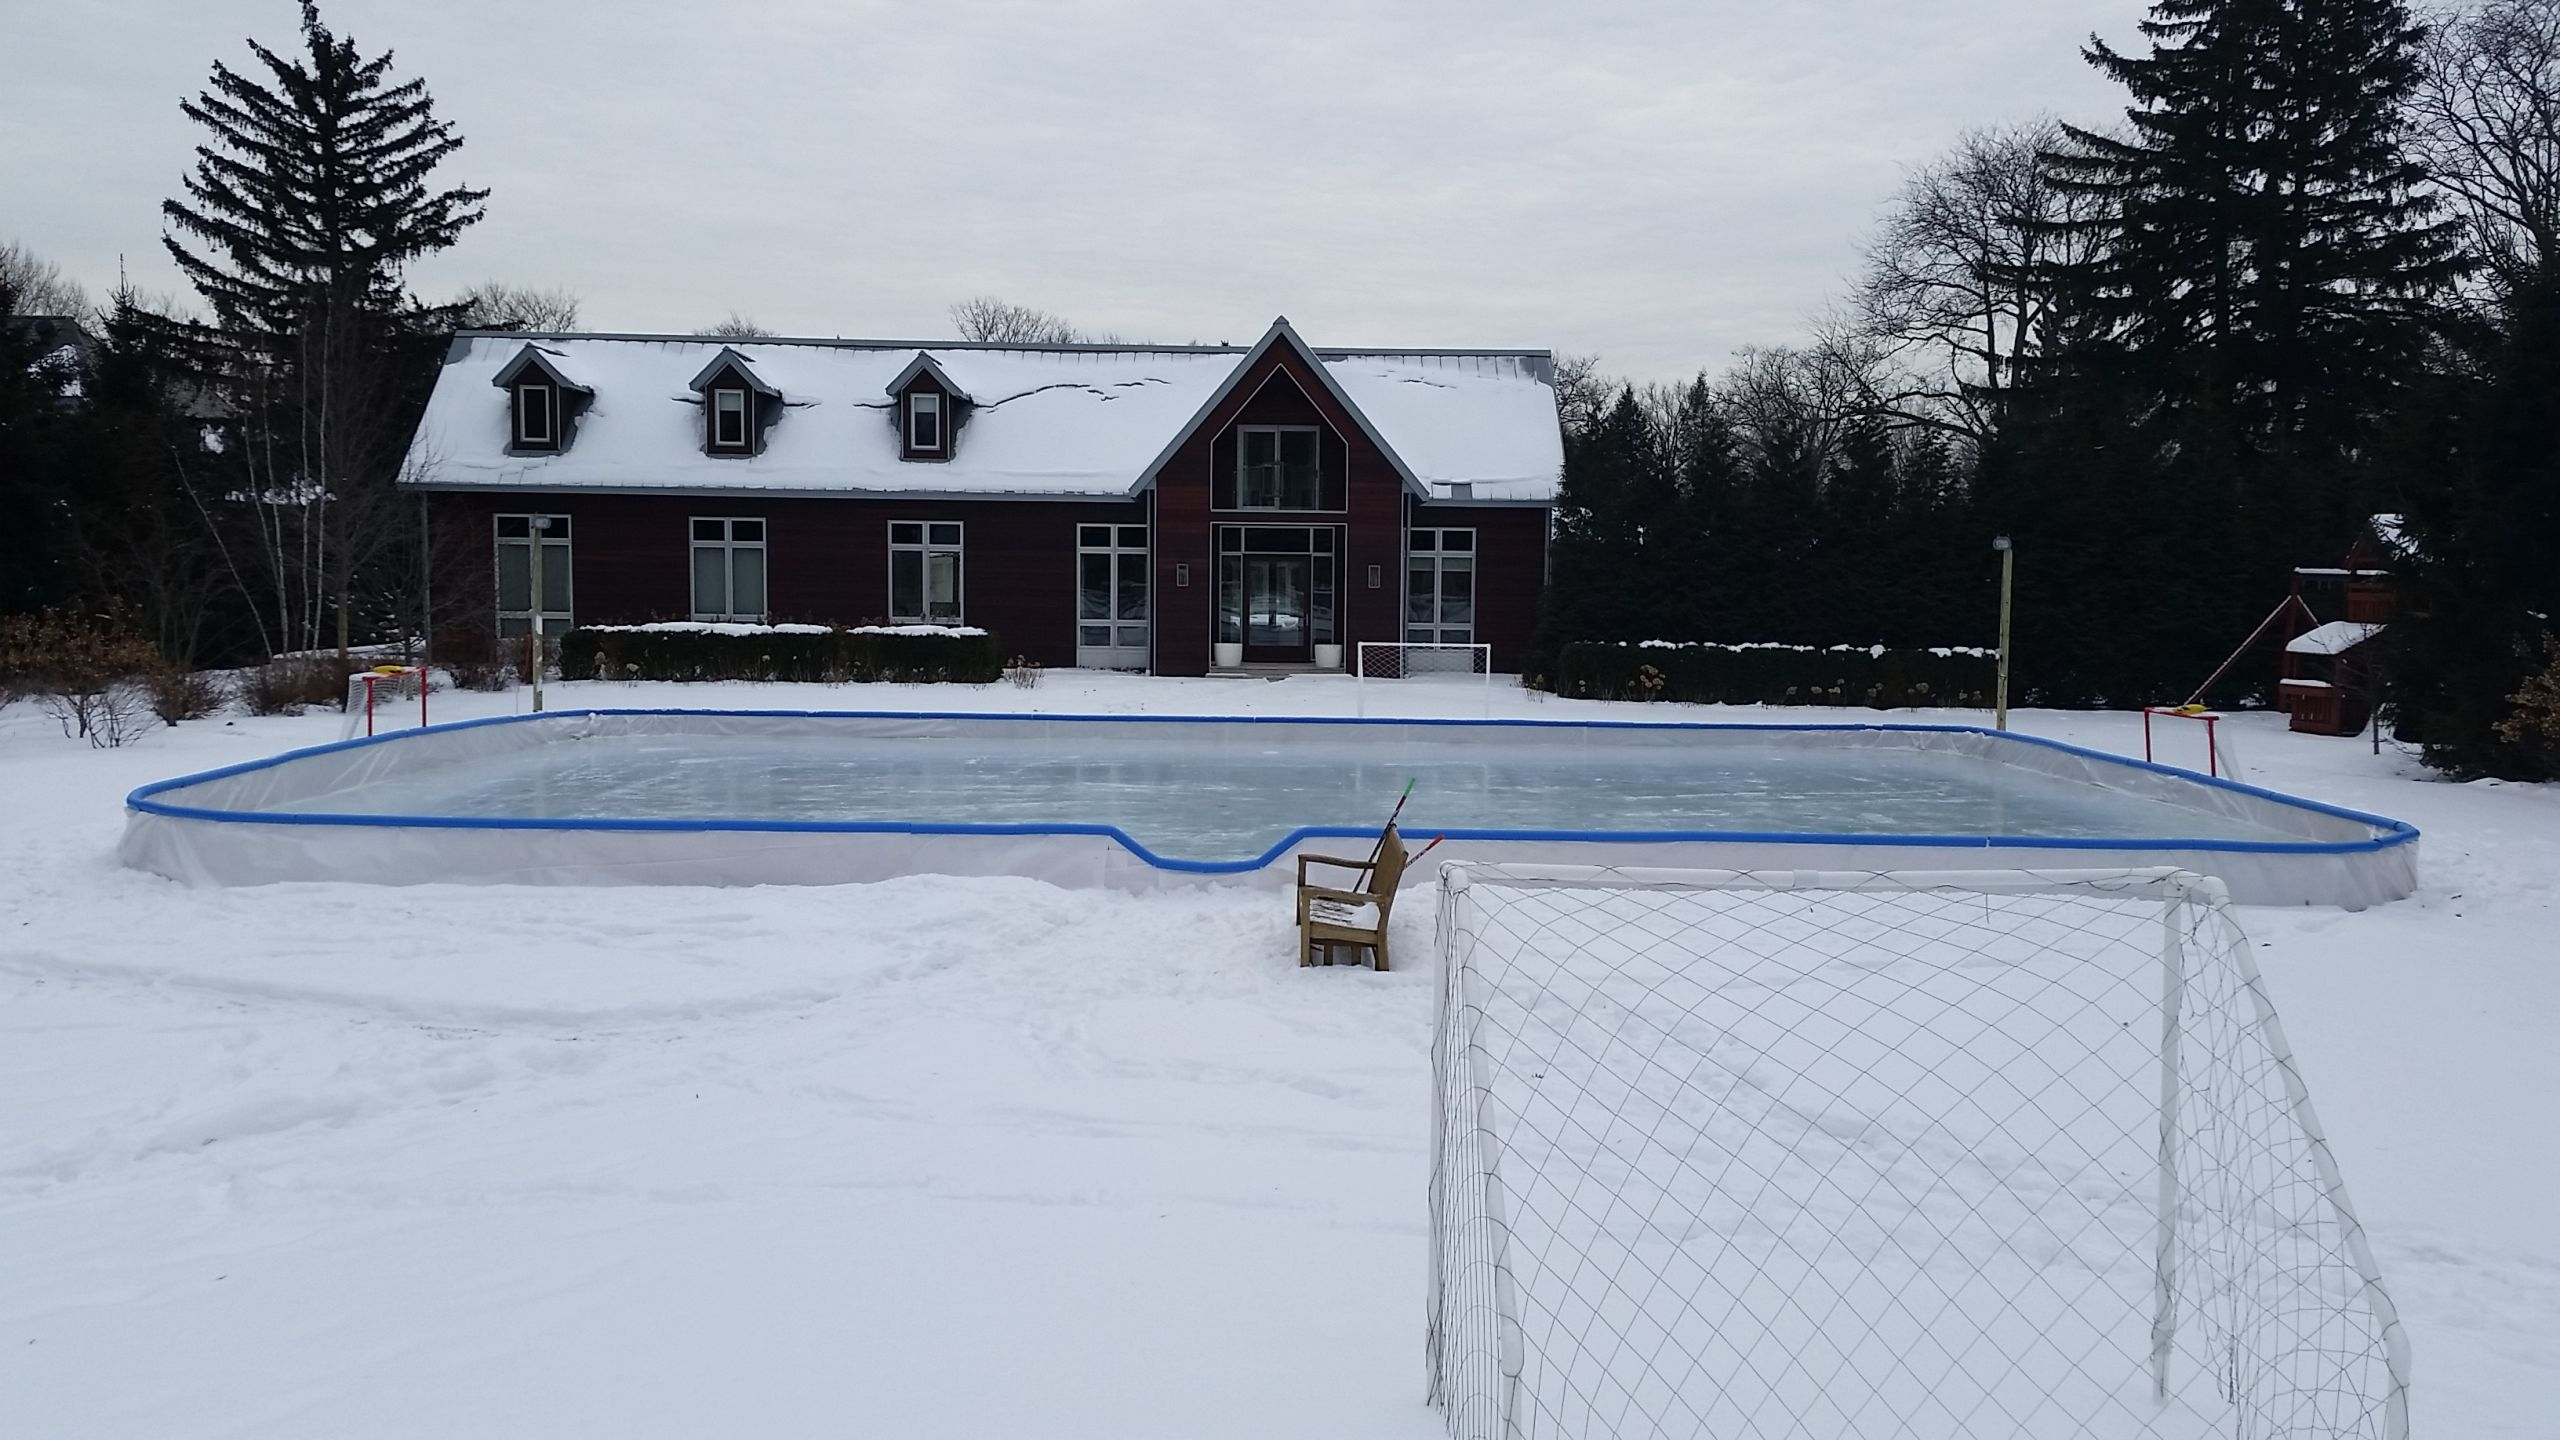 35 Insanely Chic Ice Rinks Backyard - Home, Family, Style ...